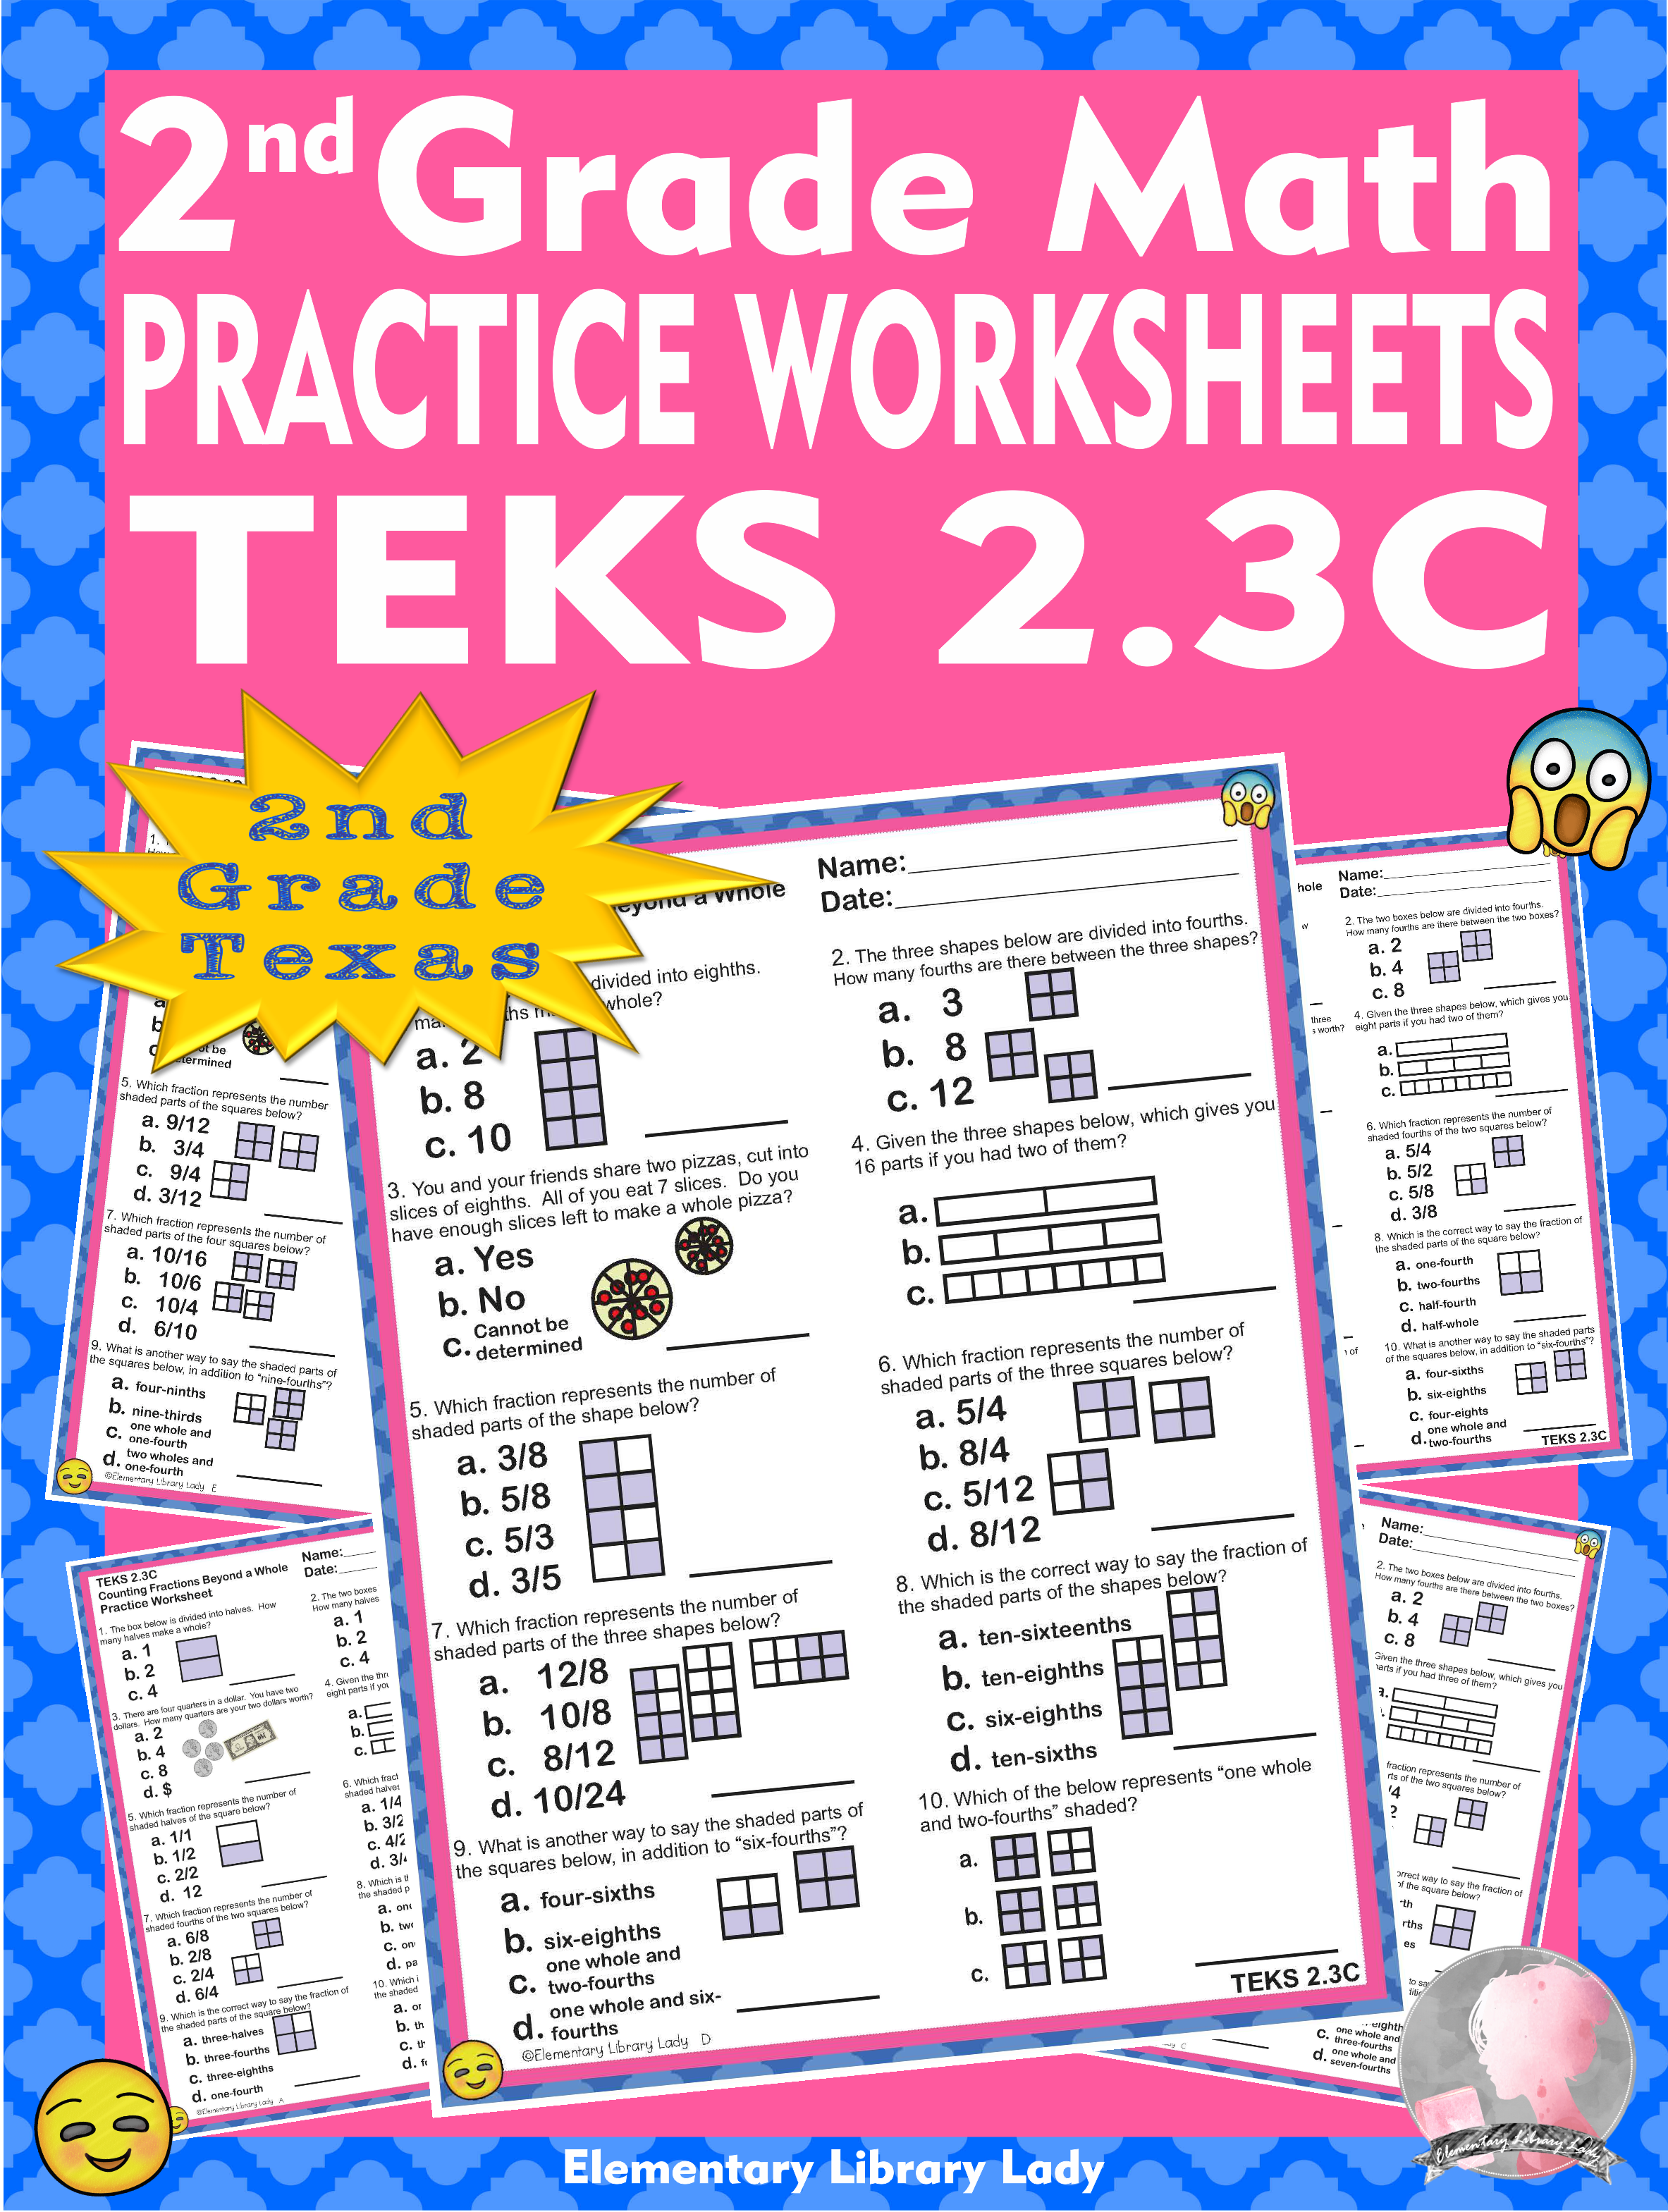 Math TEKS 2.3C Texas 2nd Grade Practice Worksheets Counting Fractions  Beyond a Whole   Math teks [ 3138 x 2366 Pixel ]